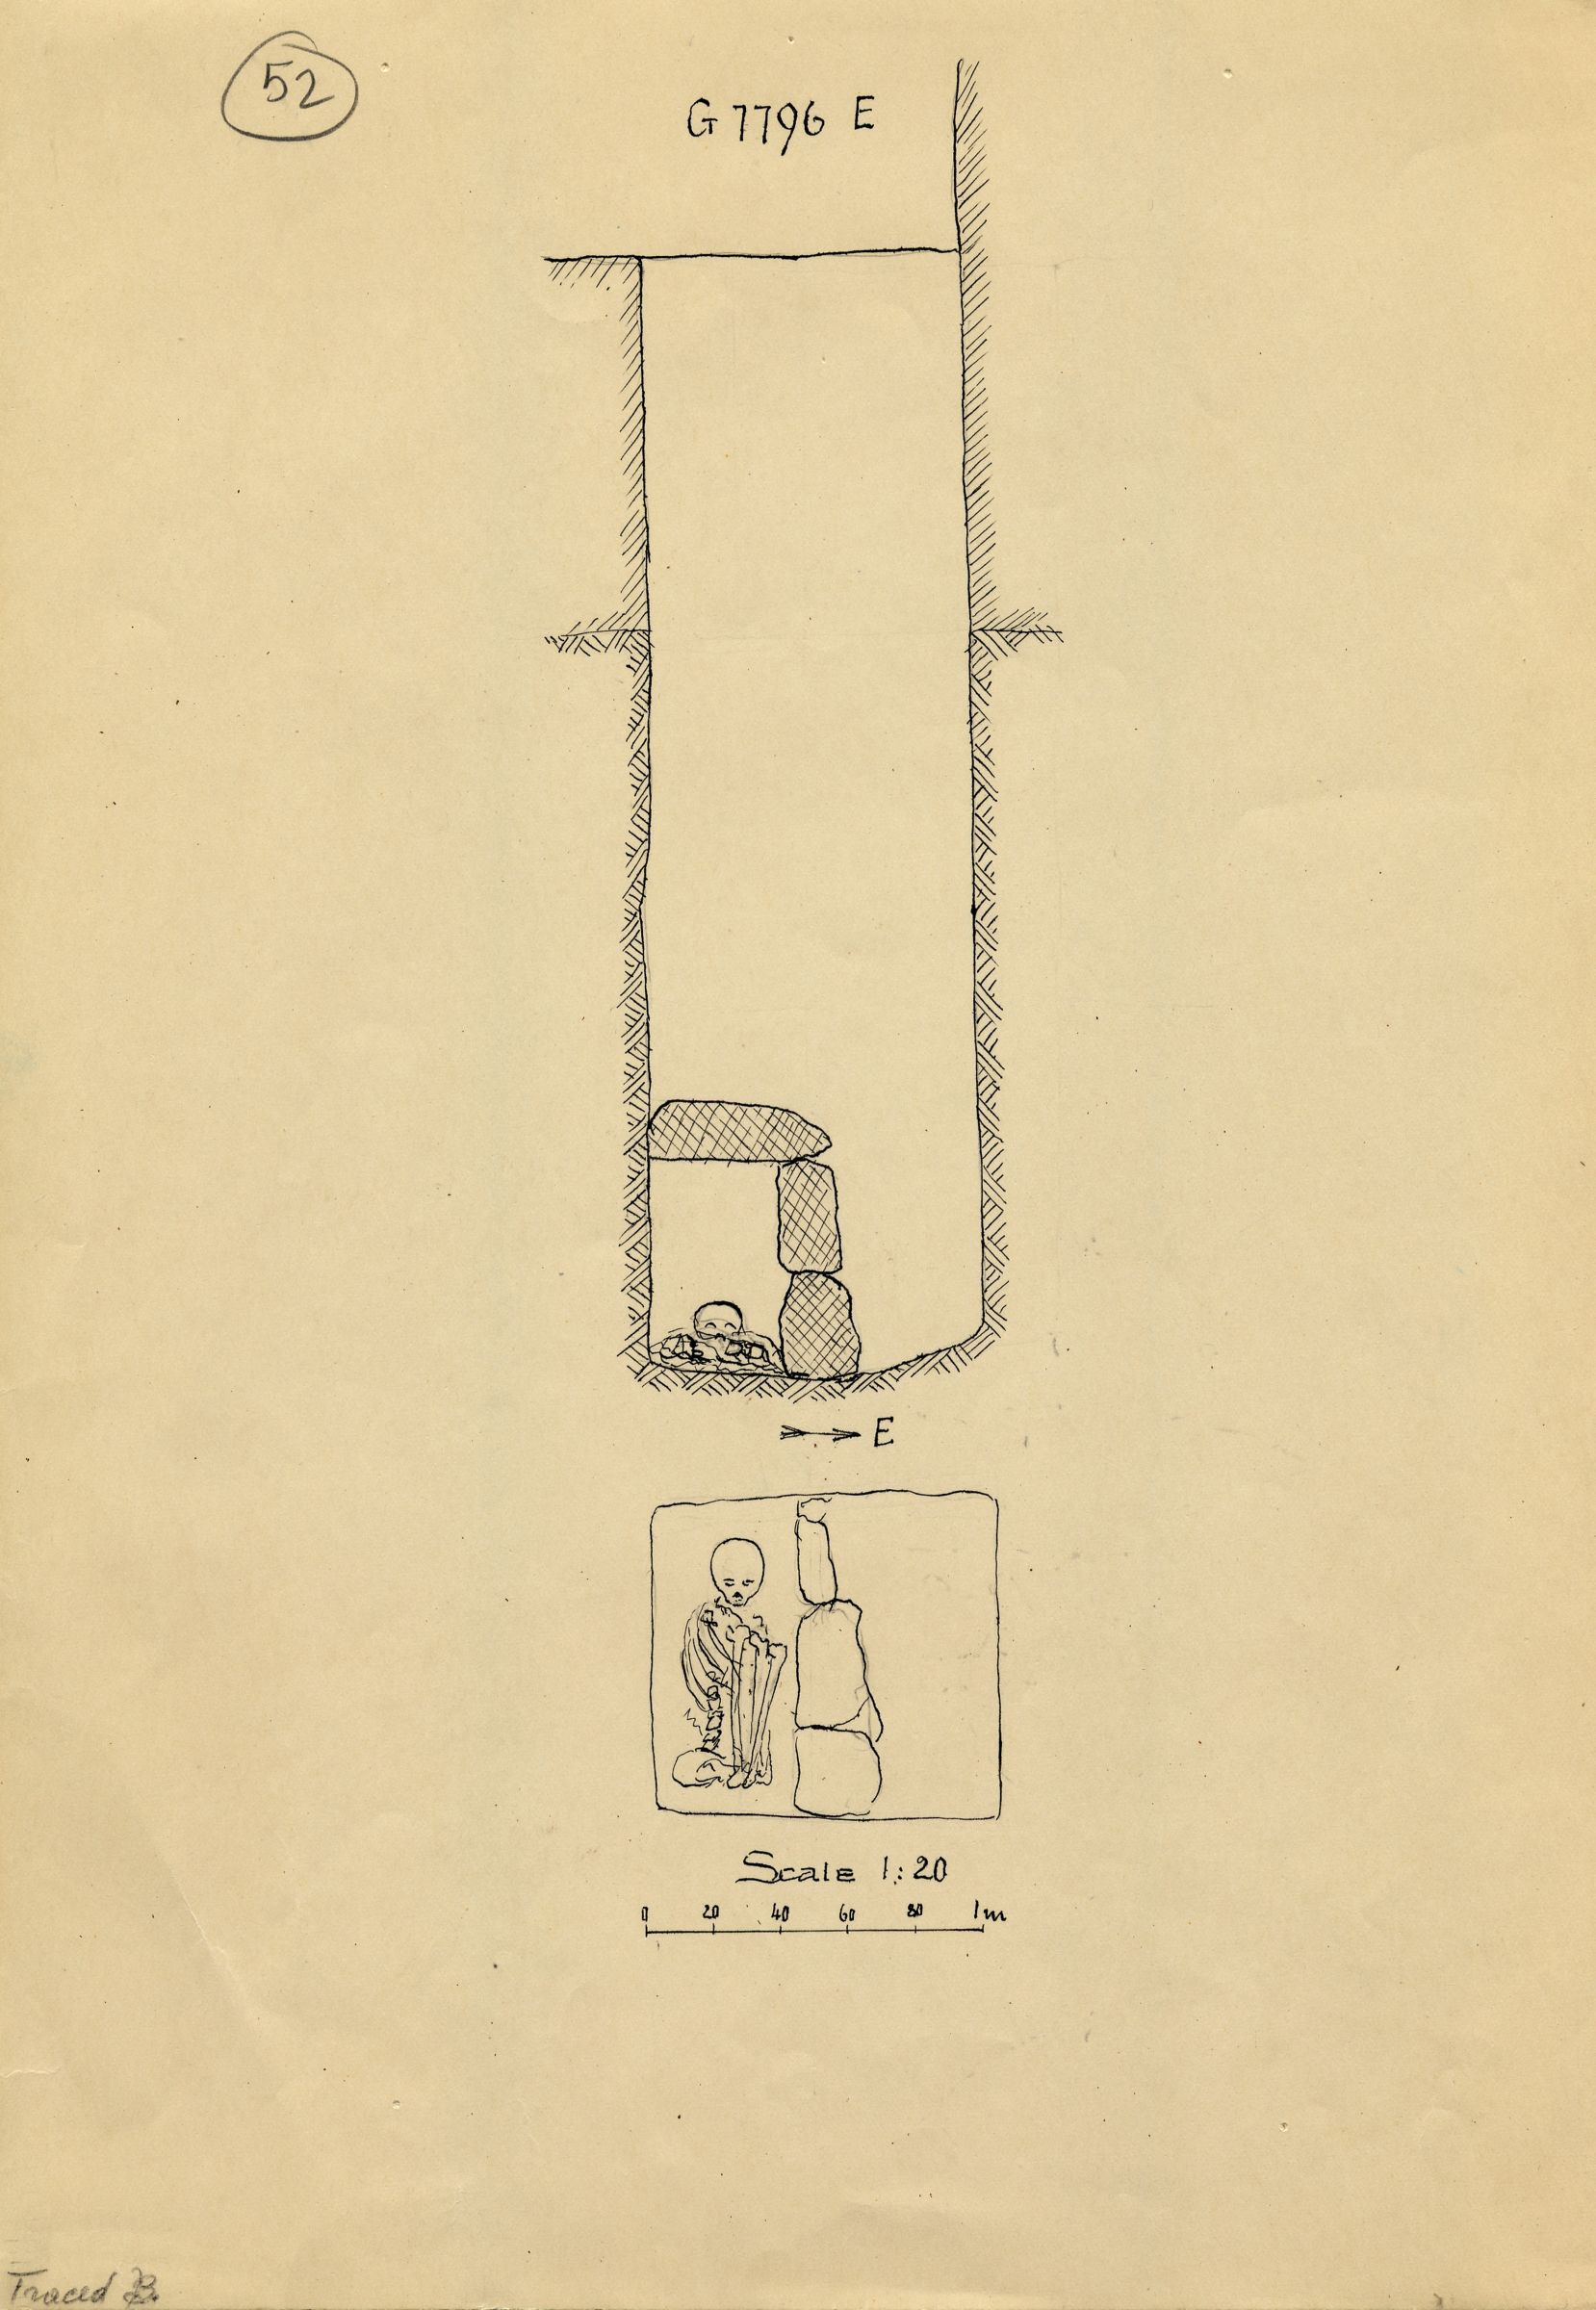 Maps and plans: G 7796, Shaft E